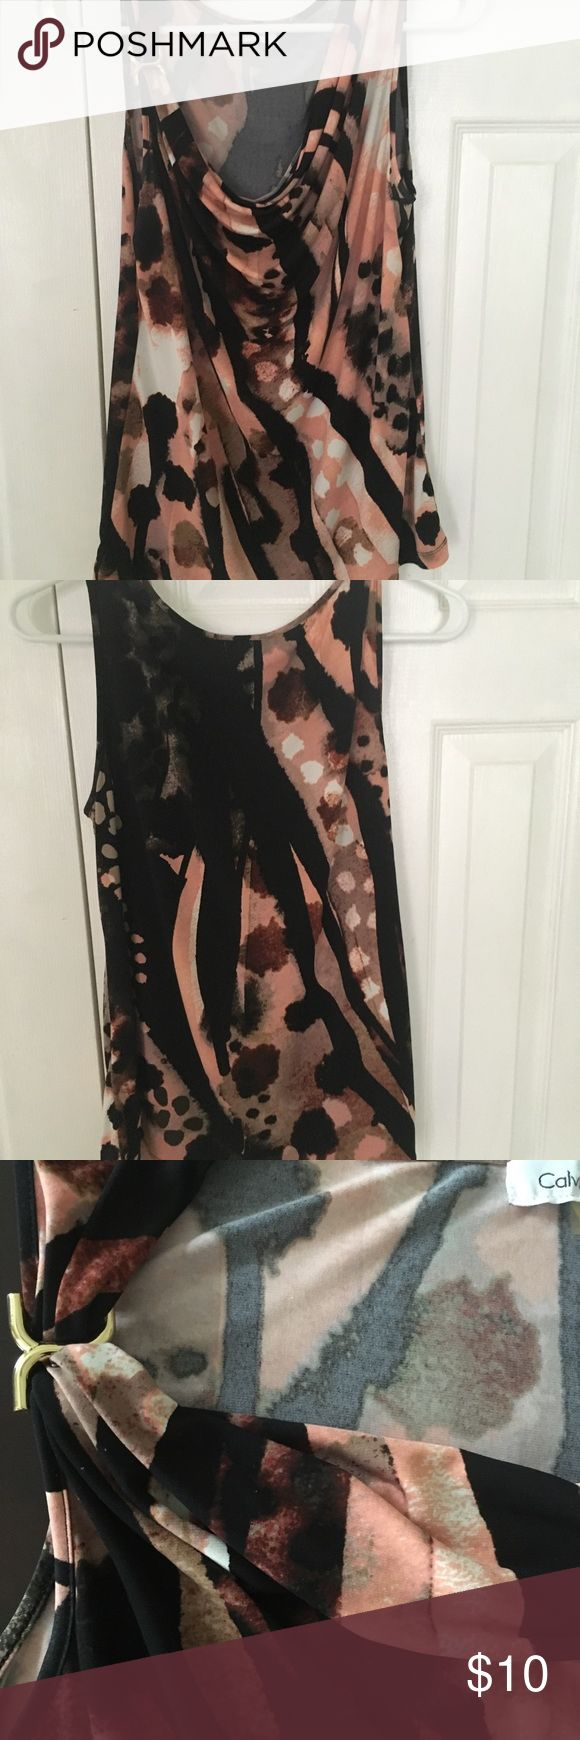 Tank top Calvin Klein floral pink black messed color tank top blouse short sleeve cow necklace collar gold design on left shoulder cute tank   good condition Calvin Klein Tops Tank Tops